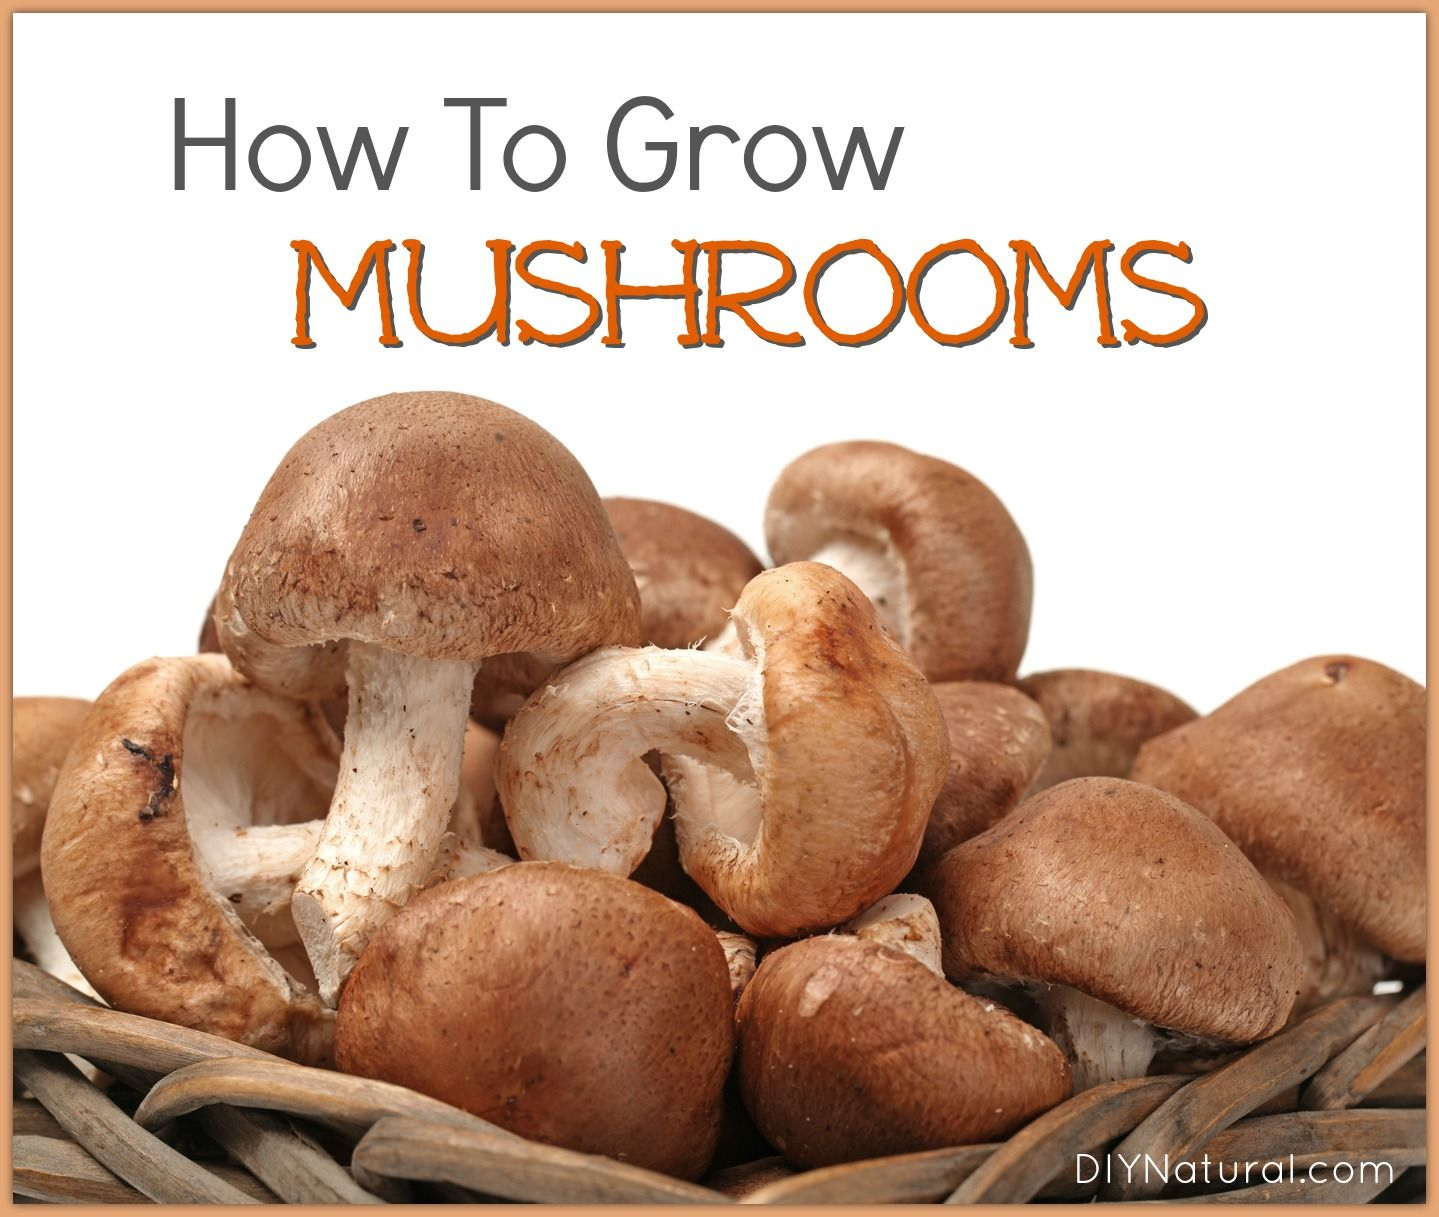 Learn how to grow mushrooms at home, naturally, using